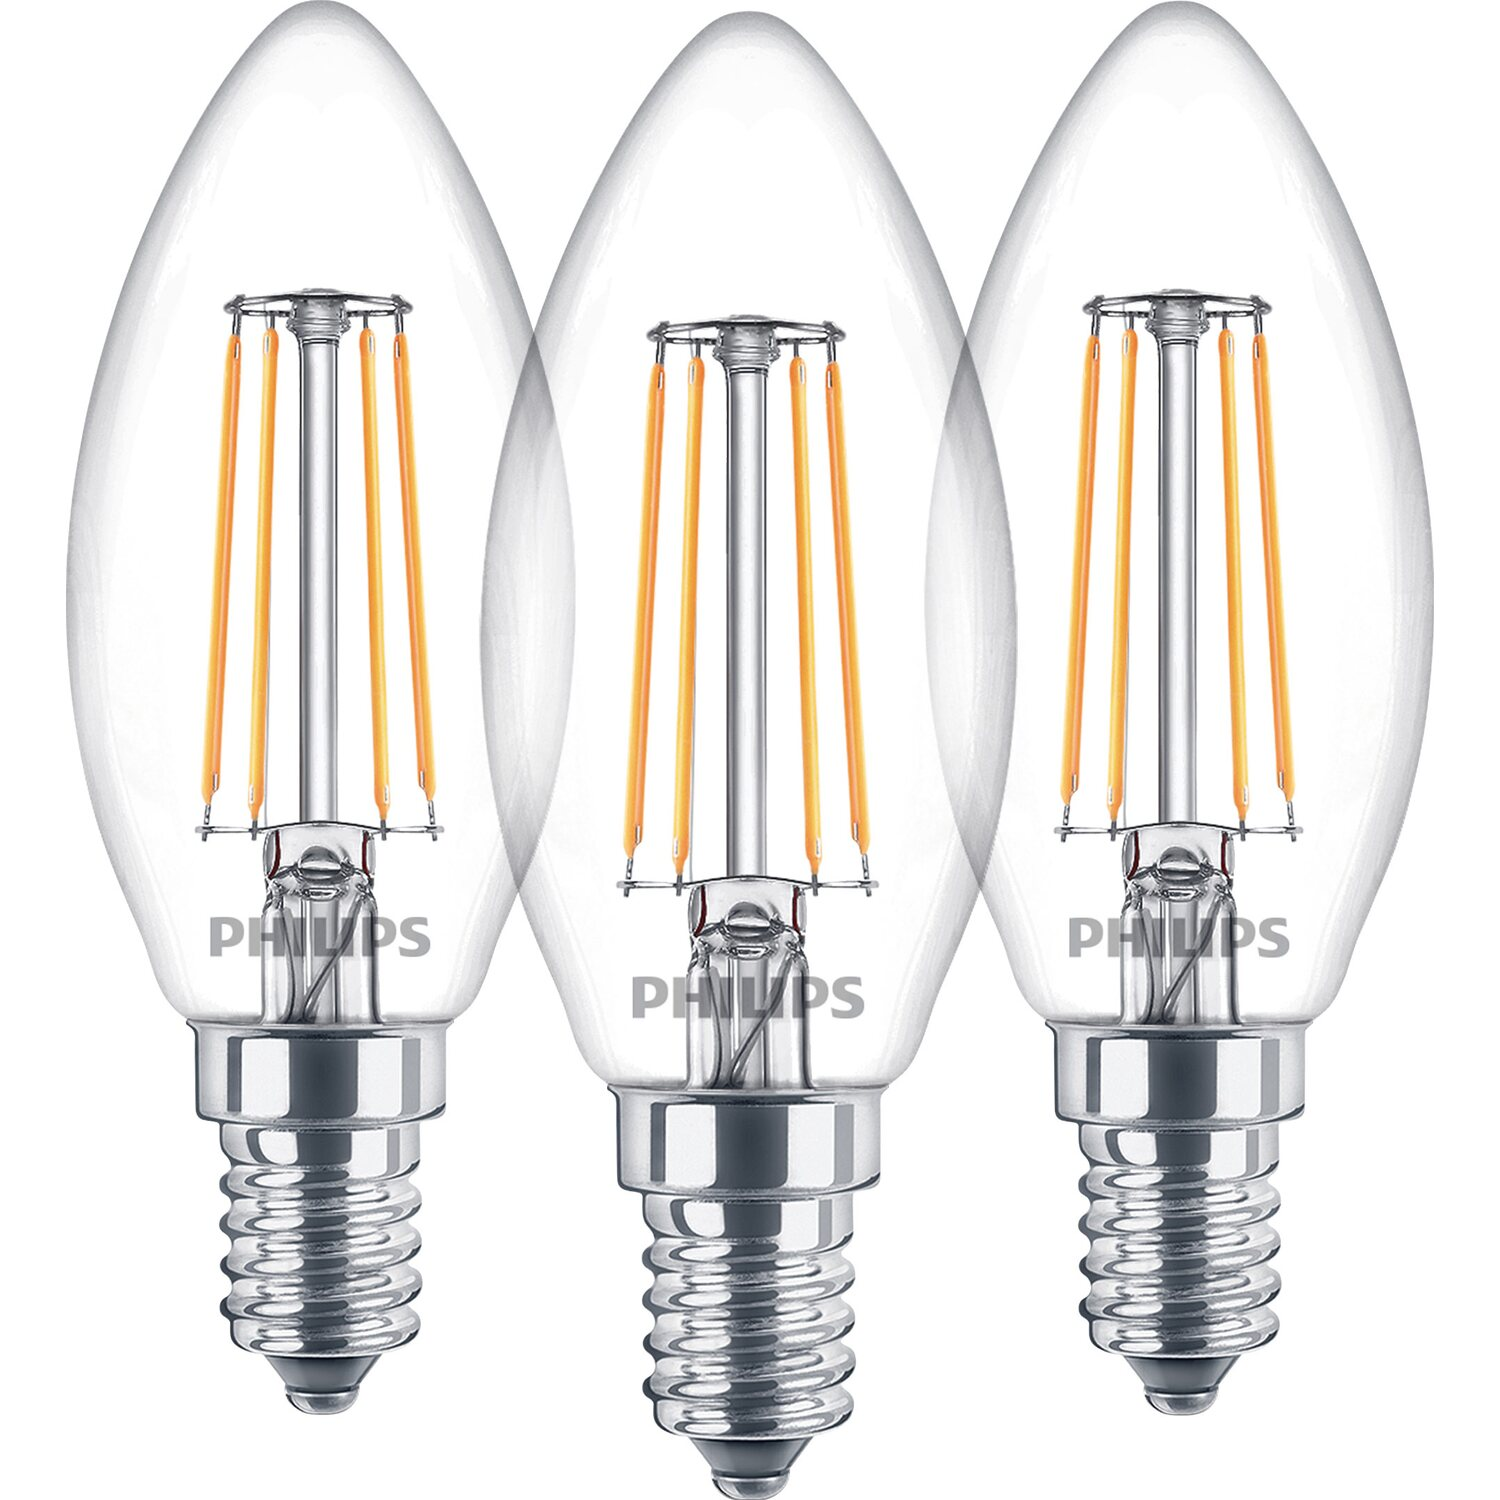 Favorit Philips LED-Lampe Kerzenform 3er-Pack E14/ 4,3 W (470 lm) Warmweiß VY87